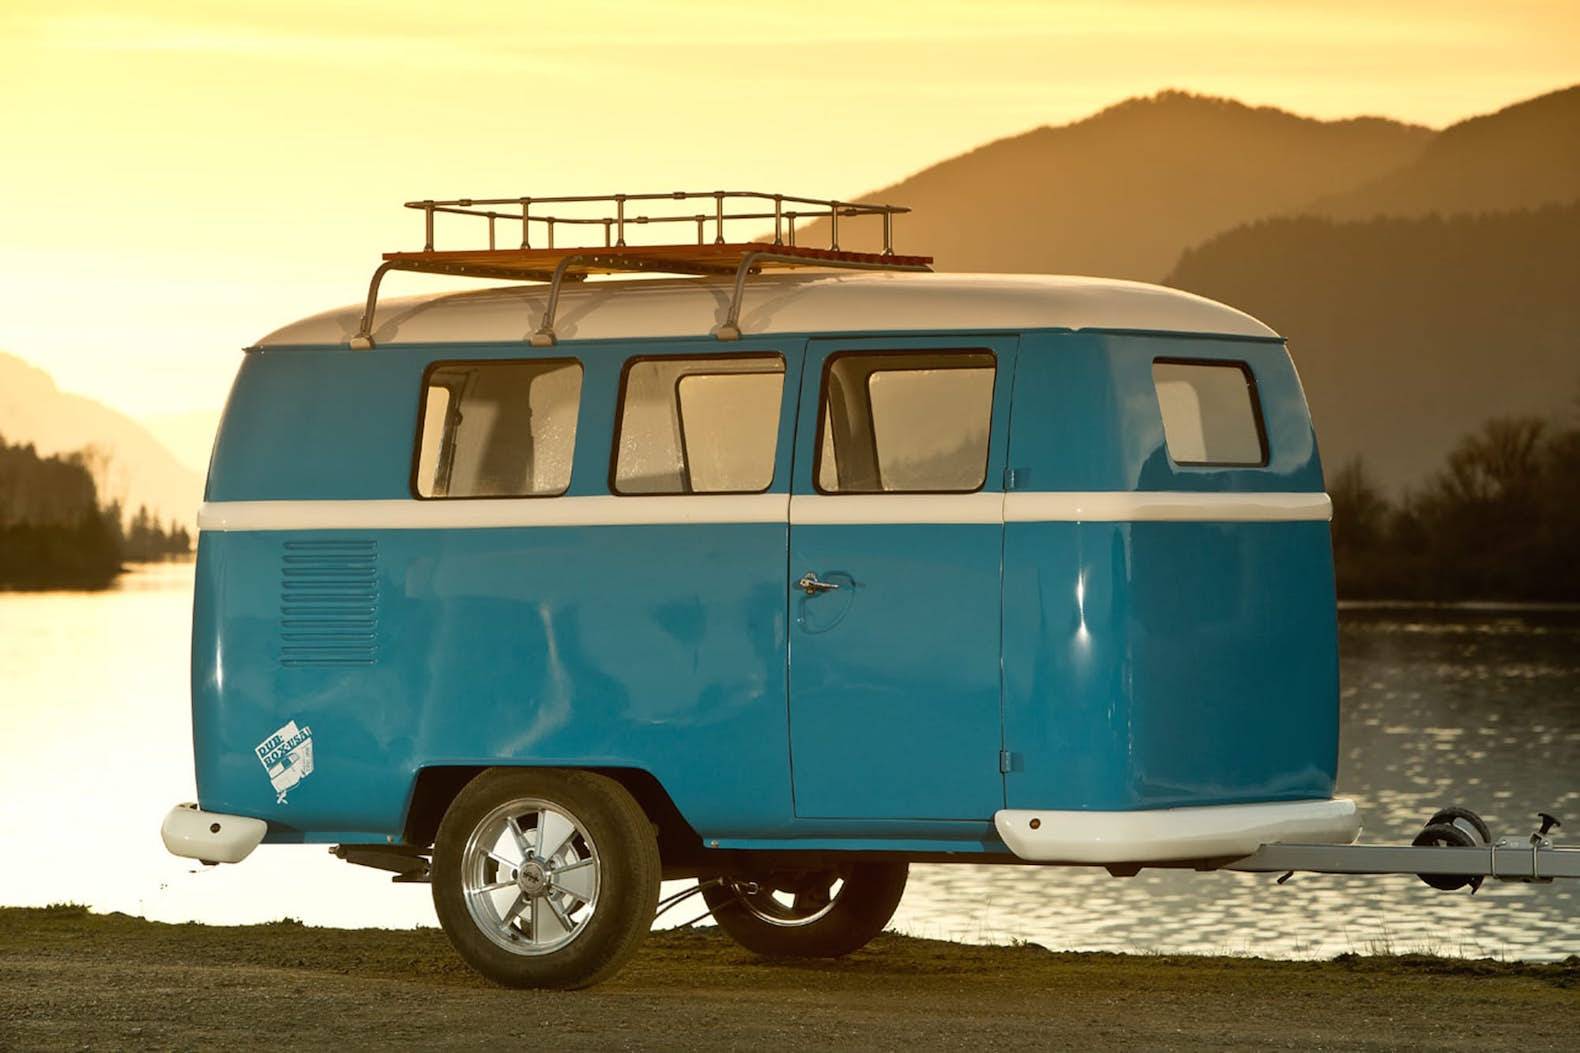 Affordable And Compact Dinky Dub Camper Offers A Modular Twist To The Vintage VW Look